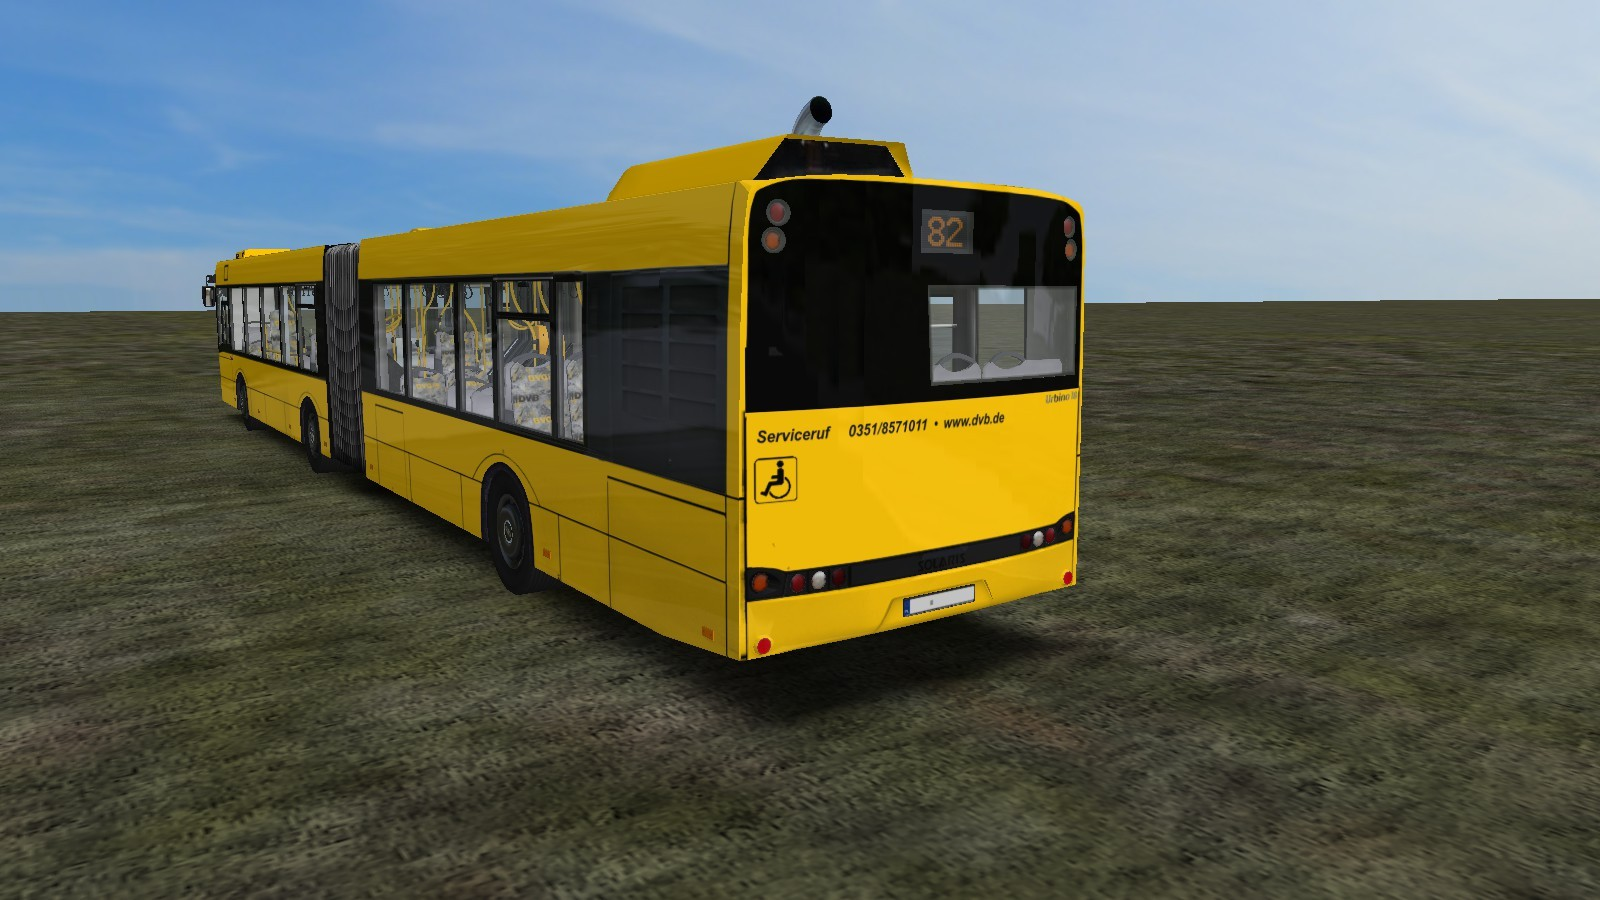 fynn 39 s kleine repaintecke neu o405 gn evag essen bus repaints bus repaints marcels. Black Bedroom Furniture Sets. Home Design Ideas